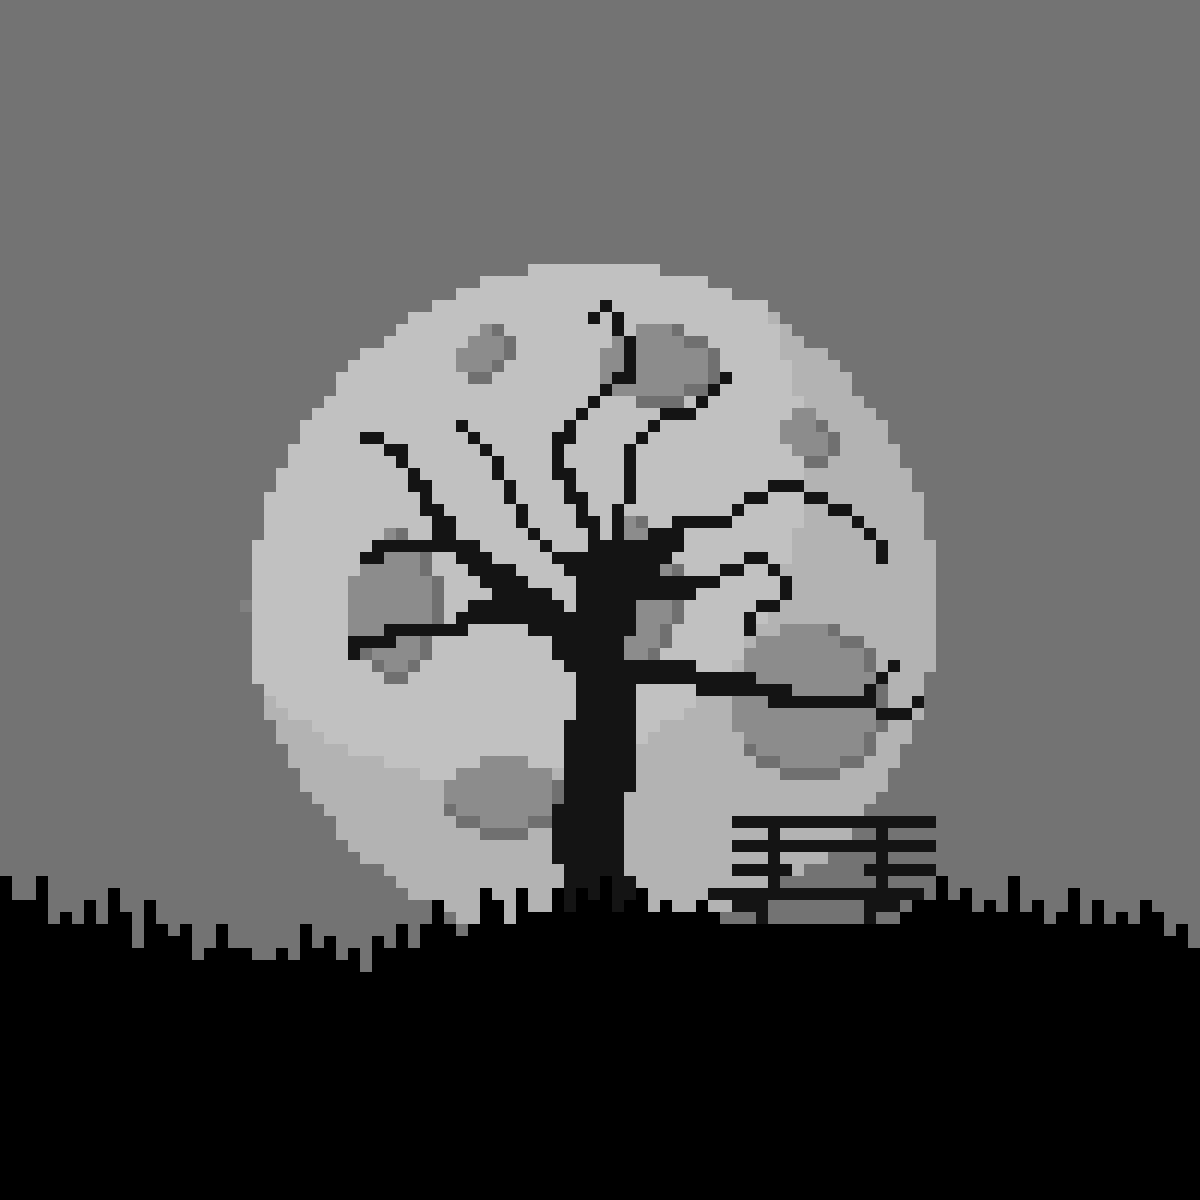 A moon scenery by Fraccium